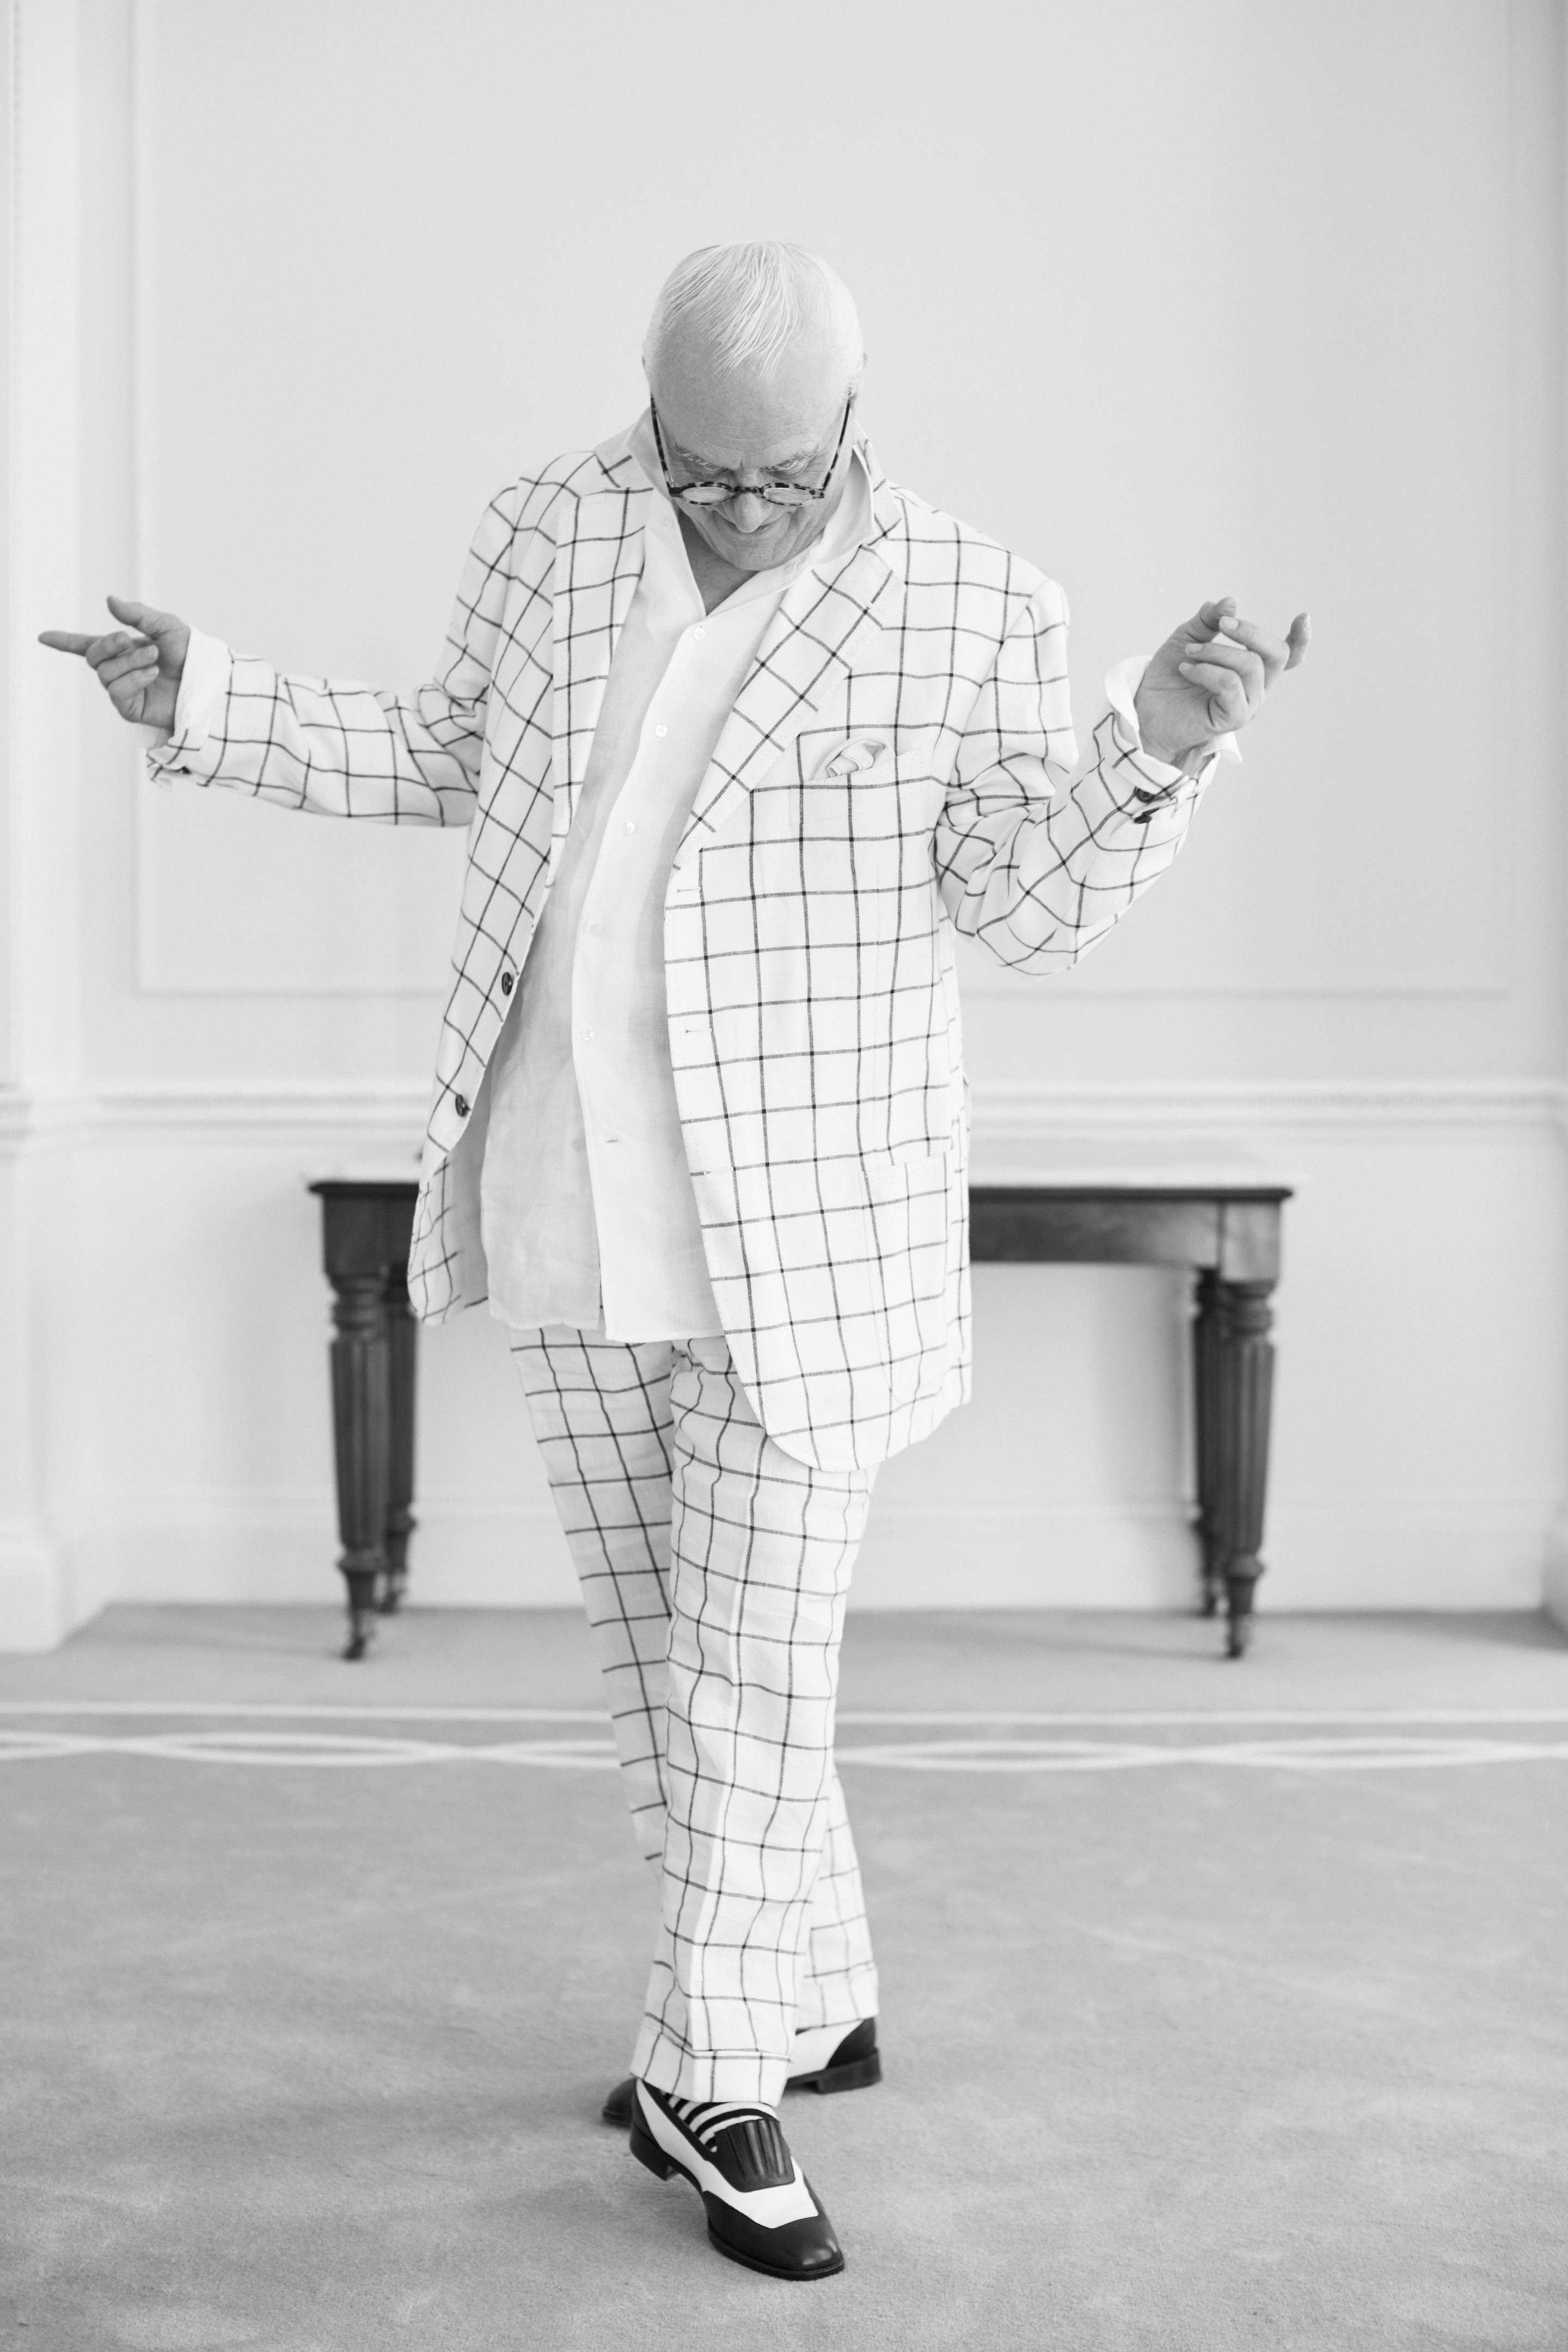 Manolo Blahnik wearing a white suit. He is looking at his feet. His hands are up in a whimsical and fun position.